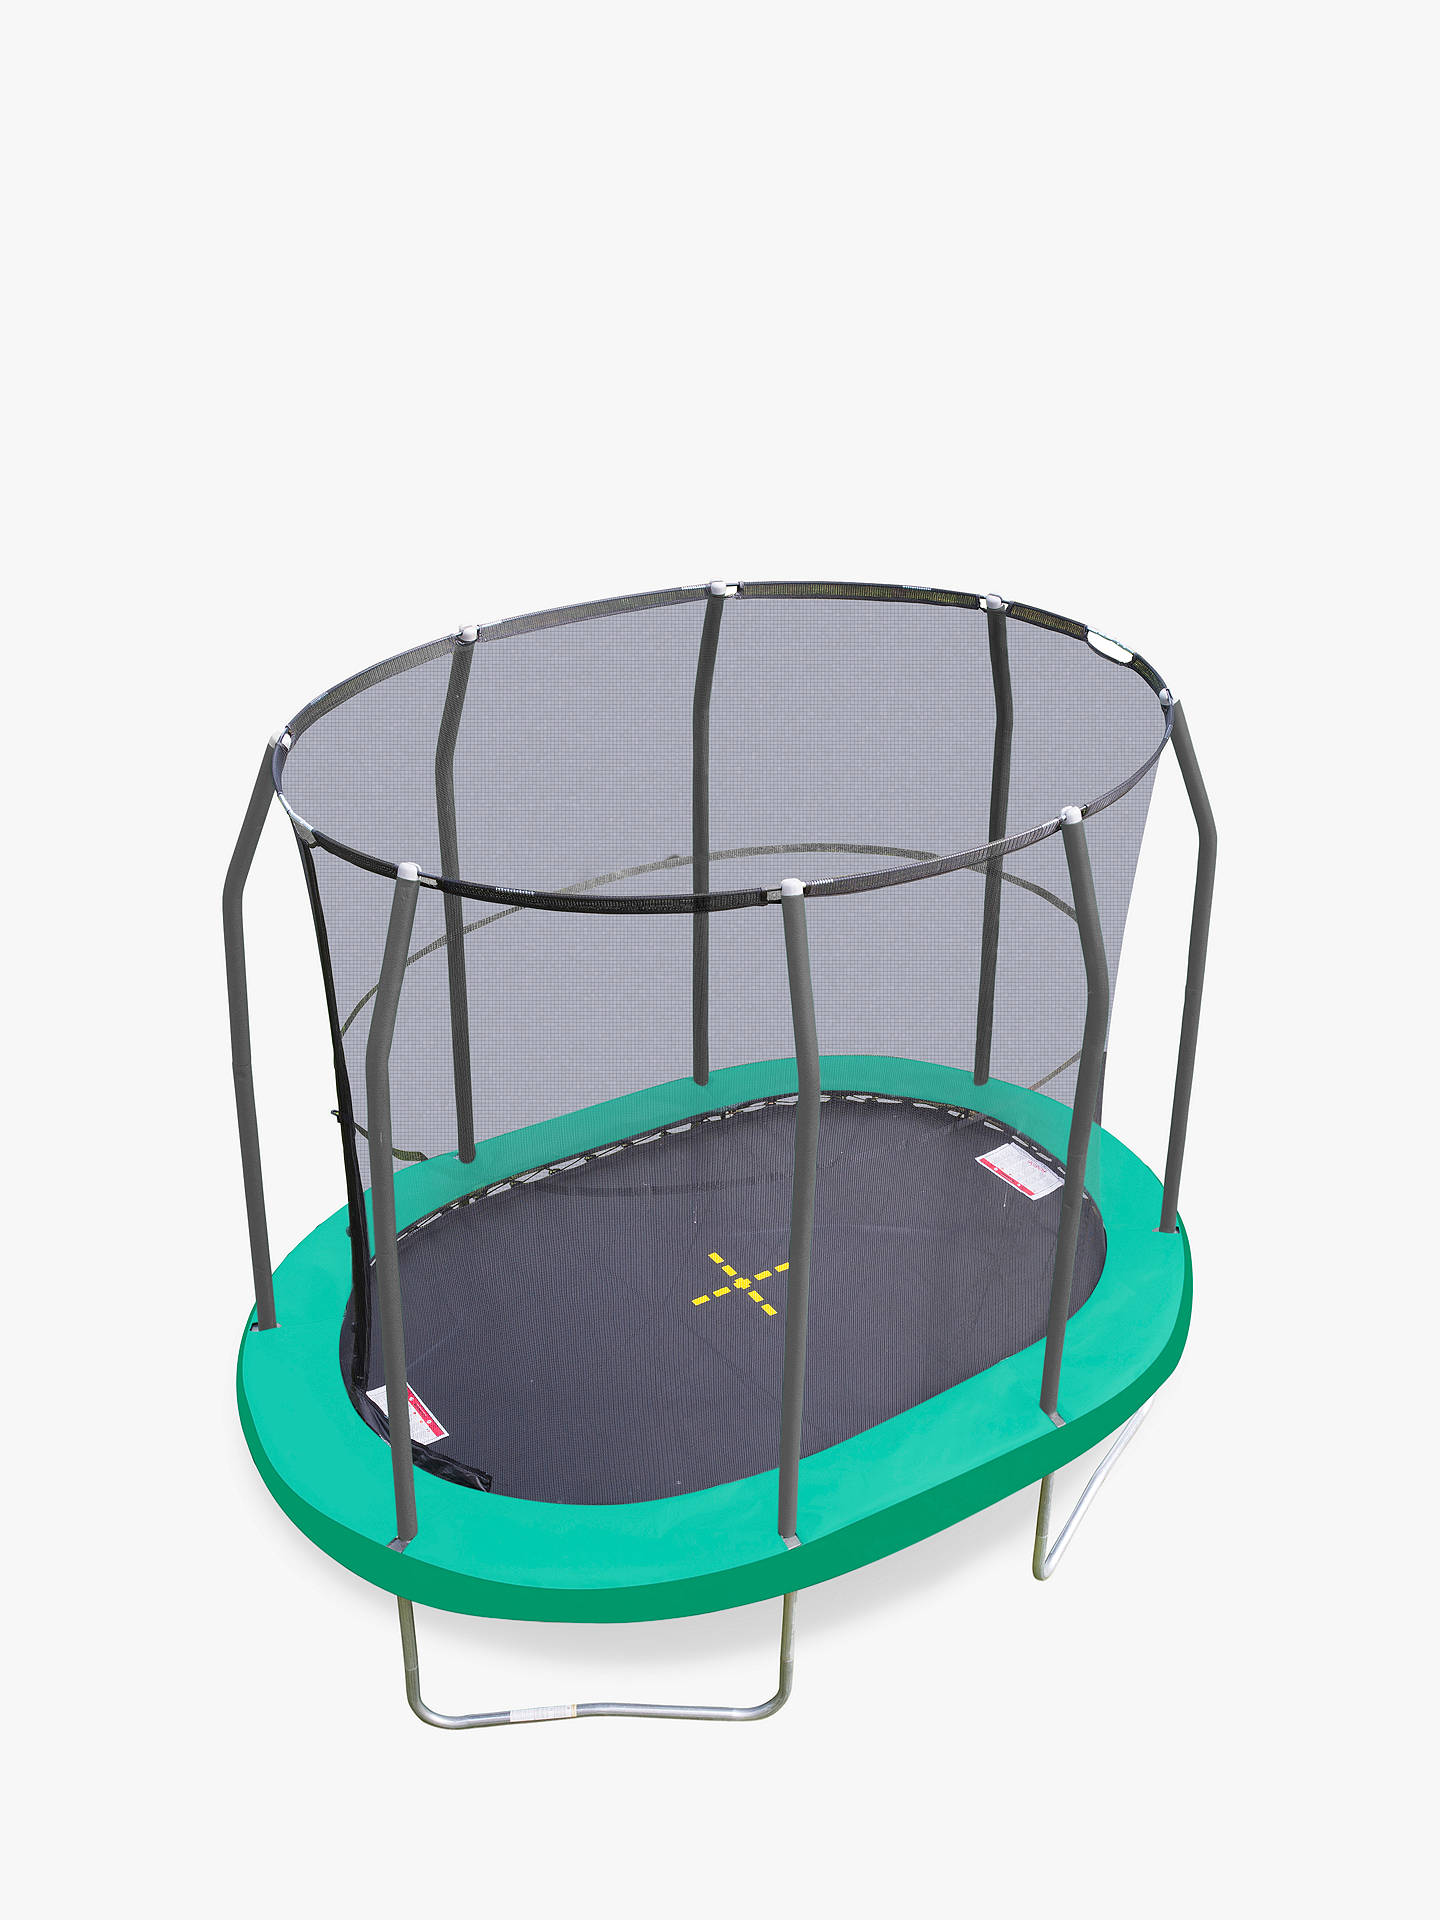 BuyJumpKing 7 x 10ft Oval Trampoline Online at johnlewis.com